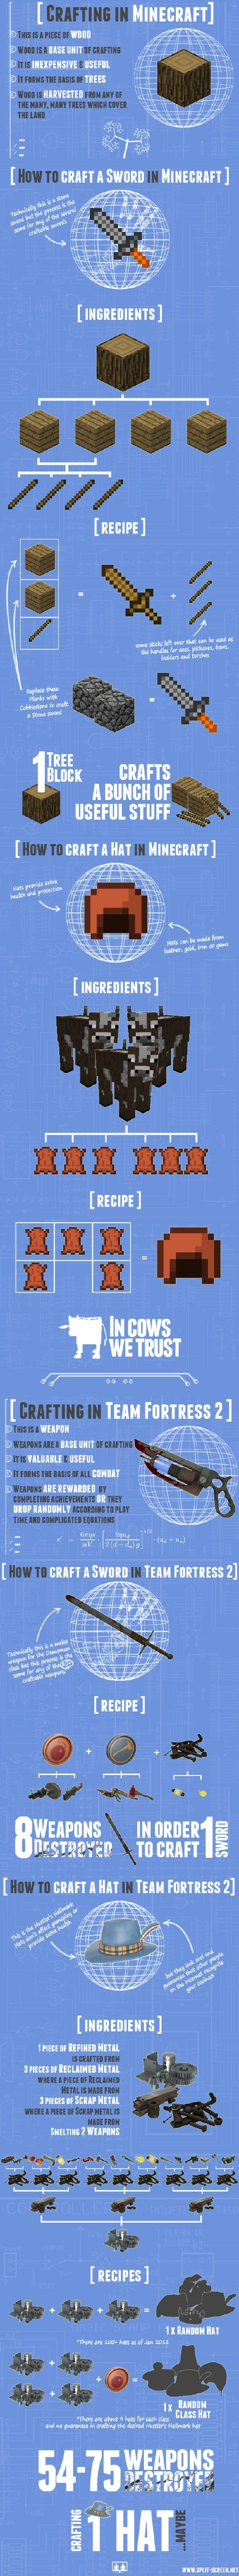 Minecraft And Team Fortress 2 Is Like Comparing Weapons And Cows